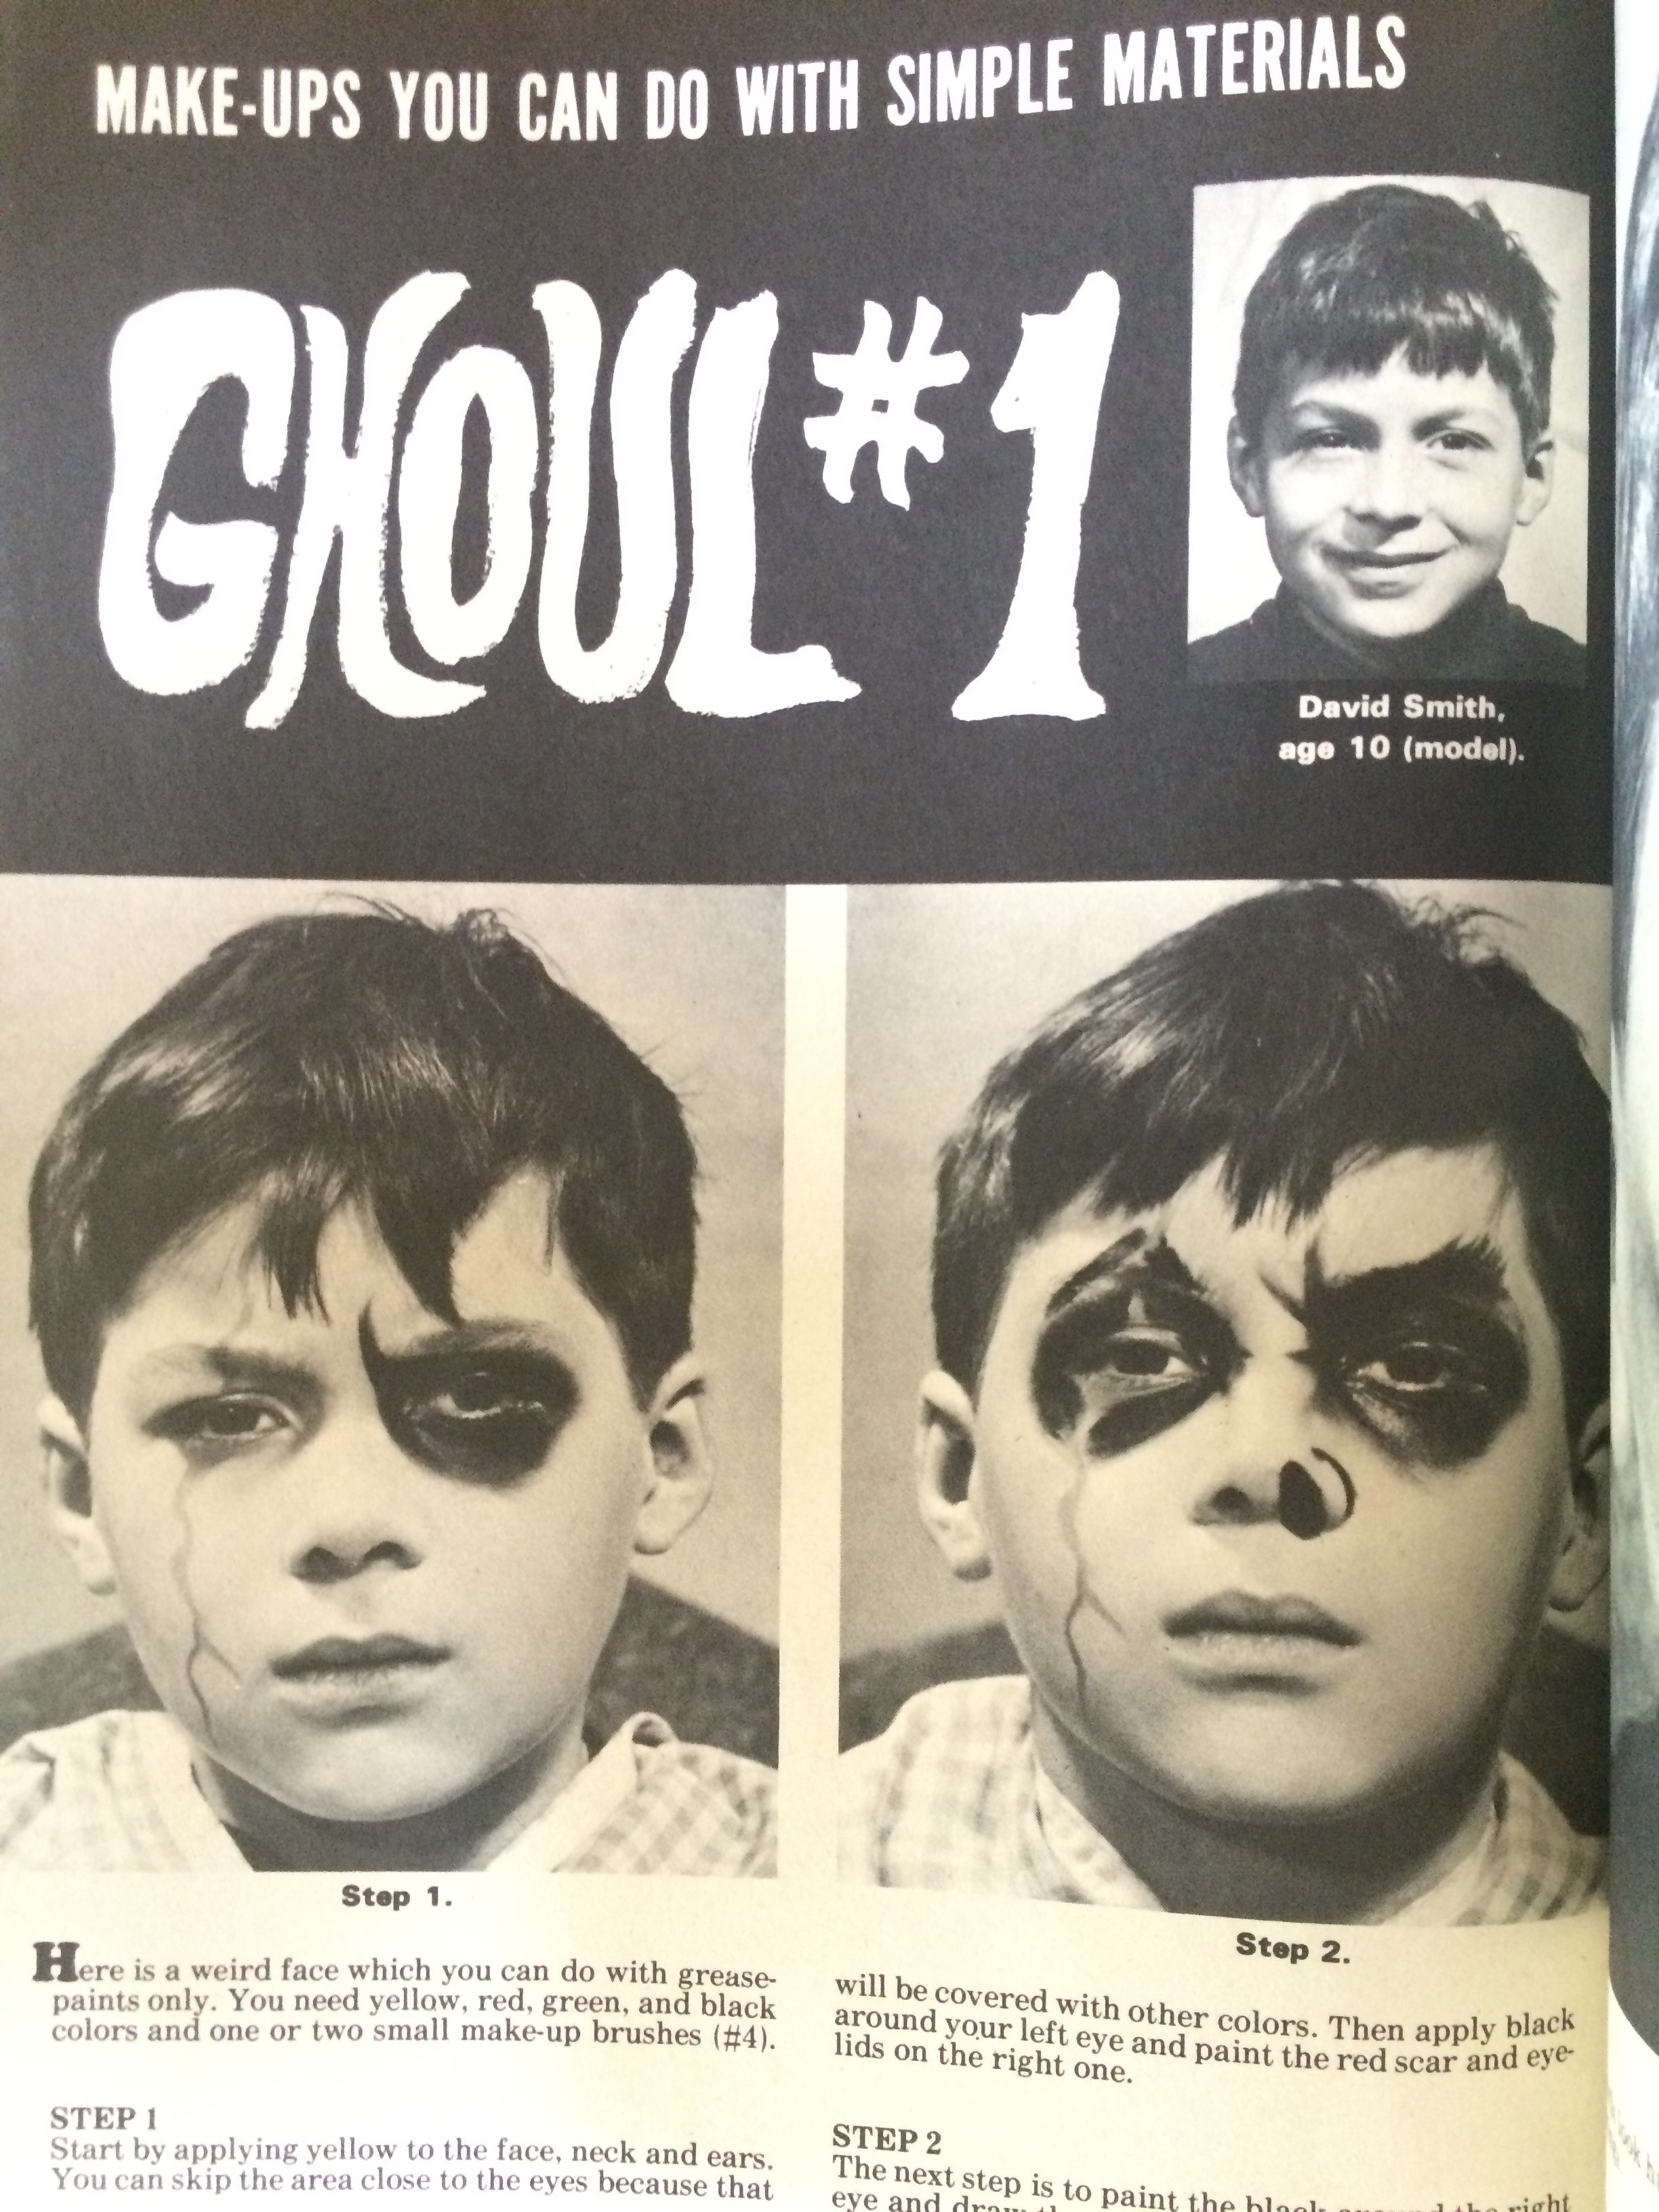 Do-It-Yourself Monster Make-Up Handbook by Dick Smith (Warren Publishing, 1965)